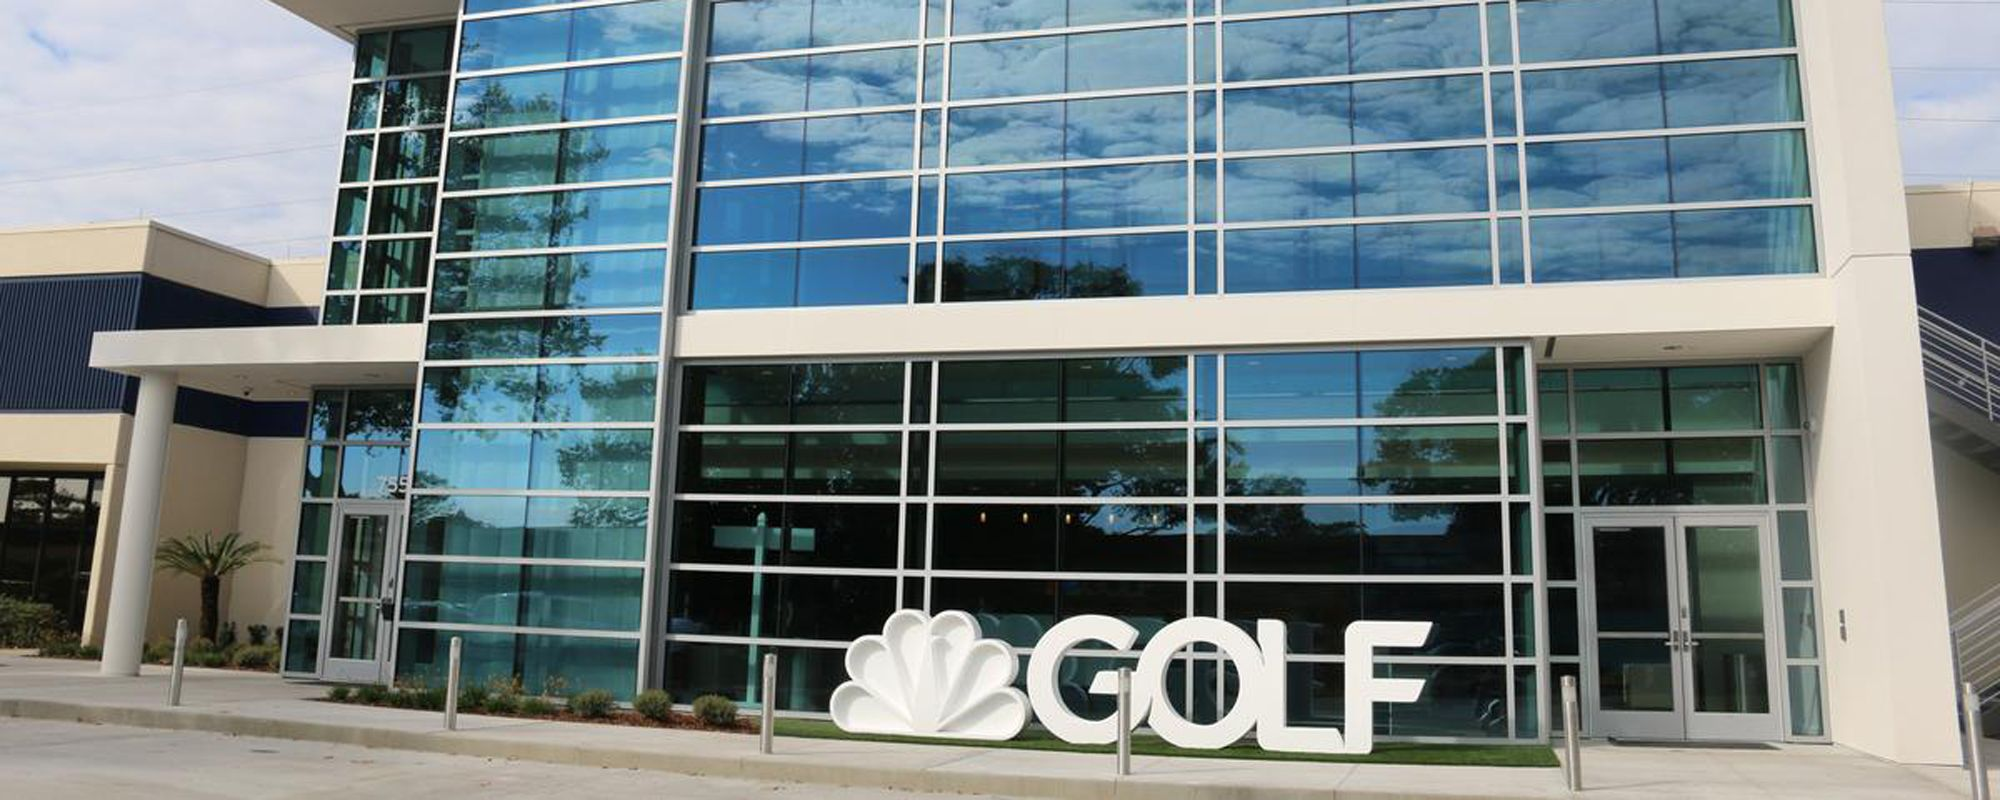 GOLF Channel – Headquarters